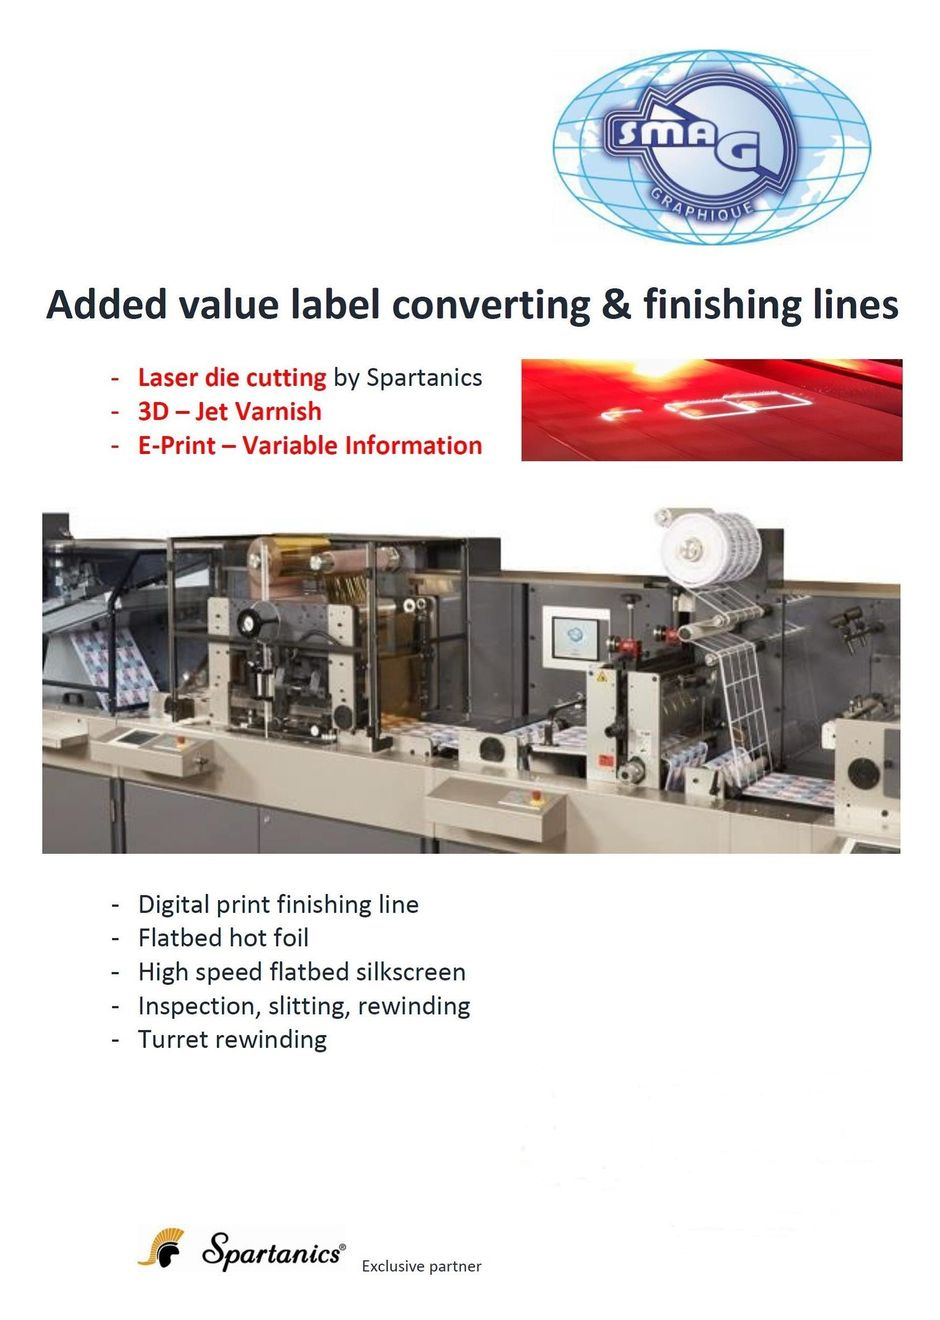 Label converting & finishing met SMAG & Vegram Graphics